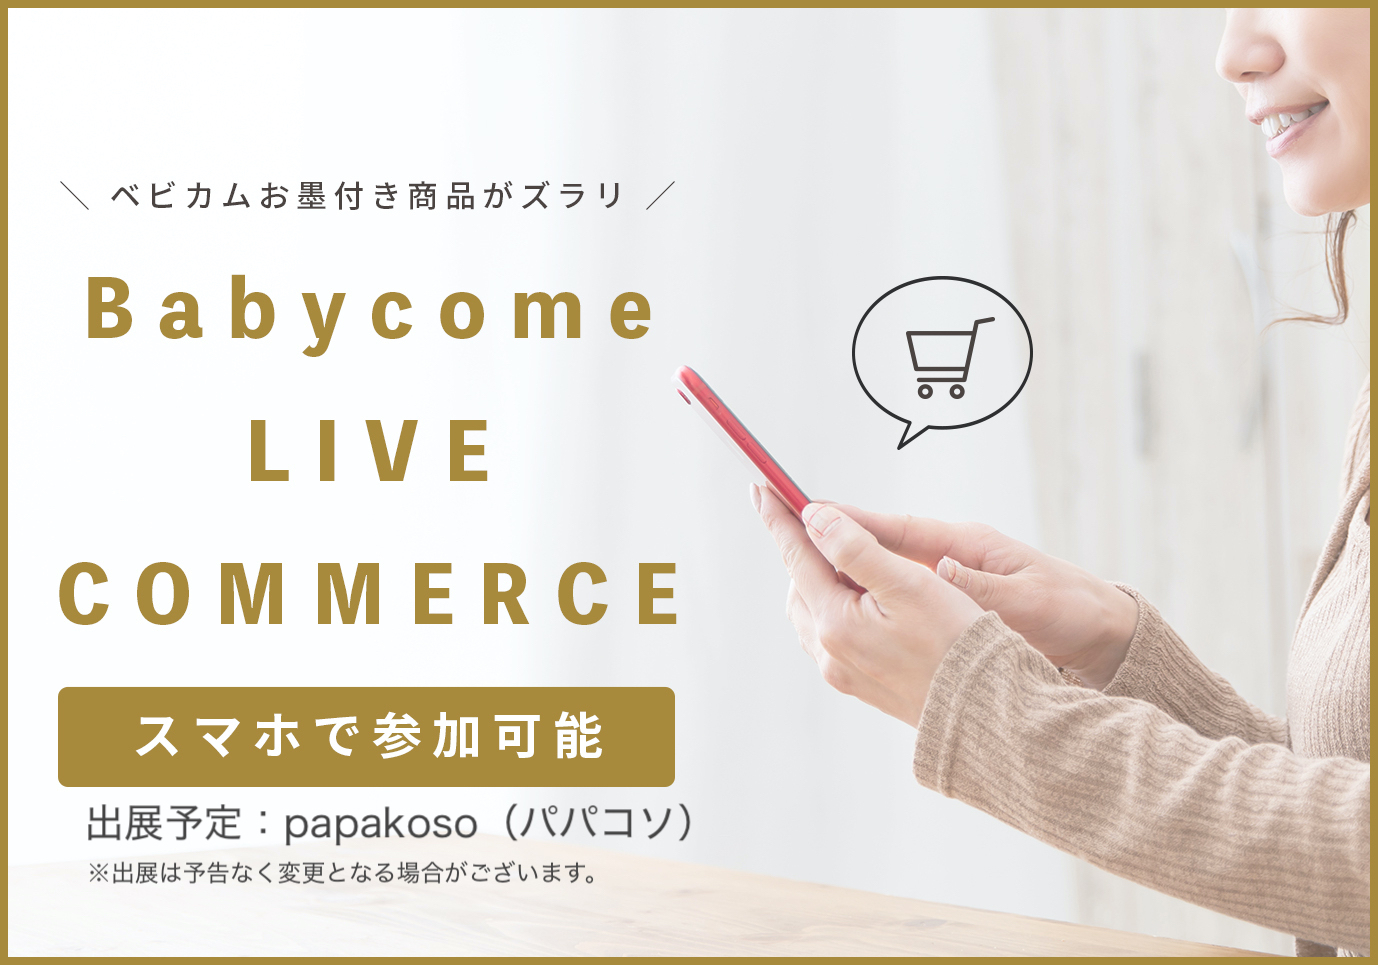 Babycome LIVE COMMERCE